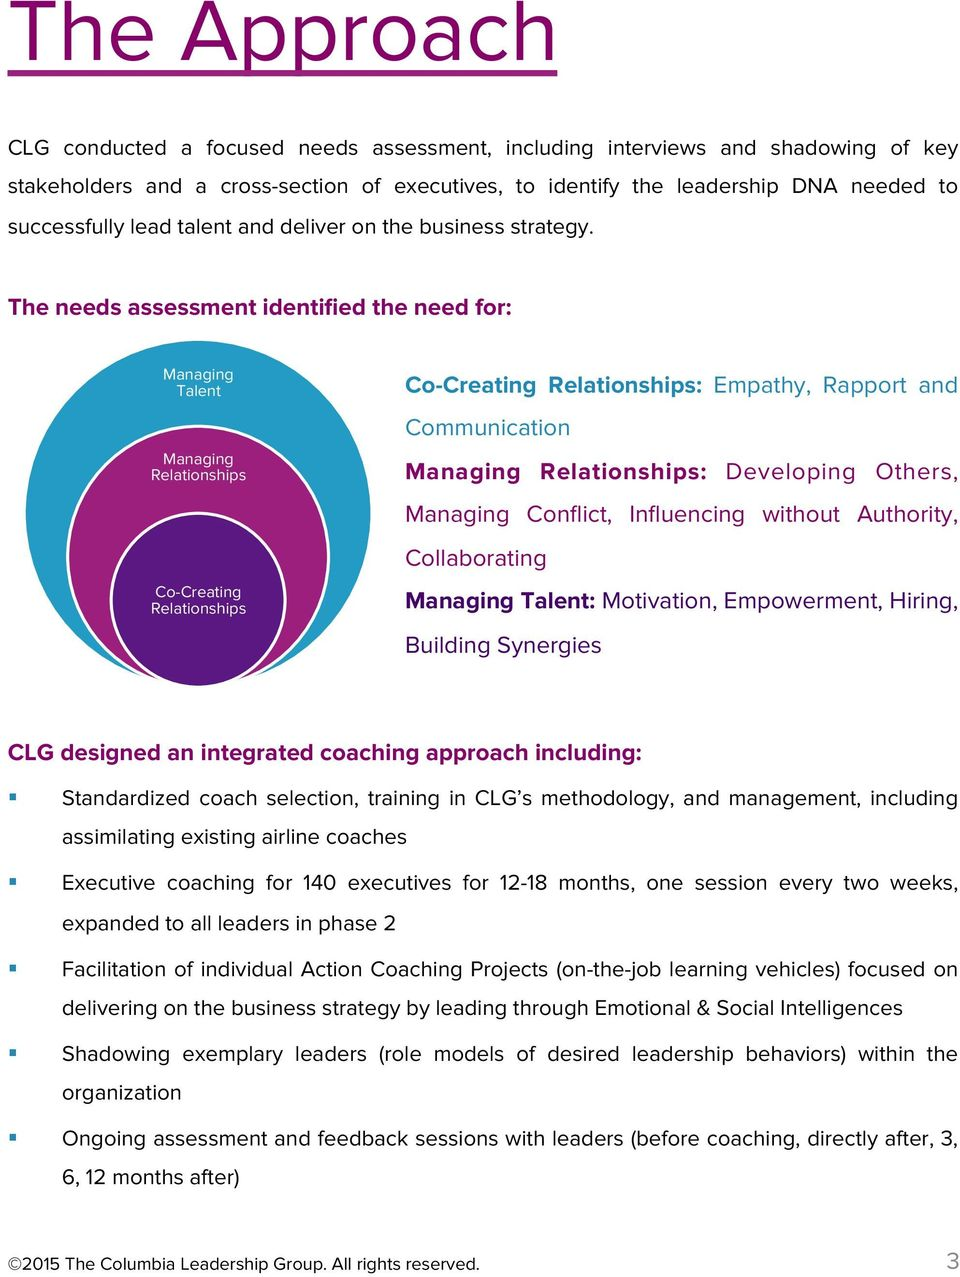 The needs assessment identified the need for: Managing Talent Managing Relationships Co-Creating Relationships Co-Creating Relationships: Empathy, Rapport and Communication Managing Relationships: